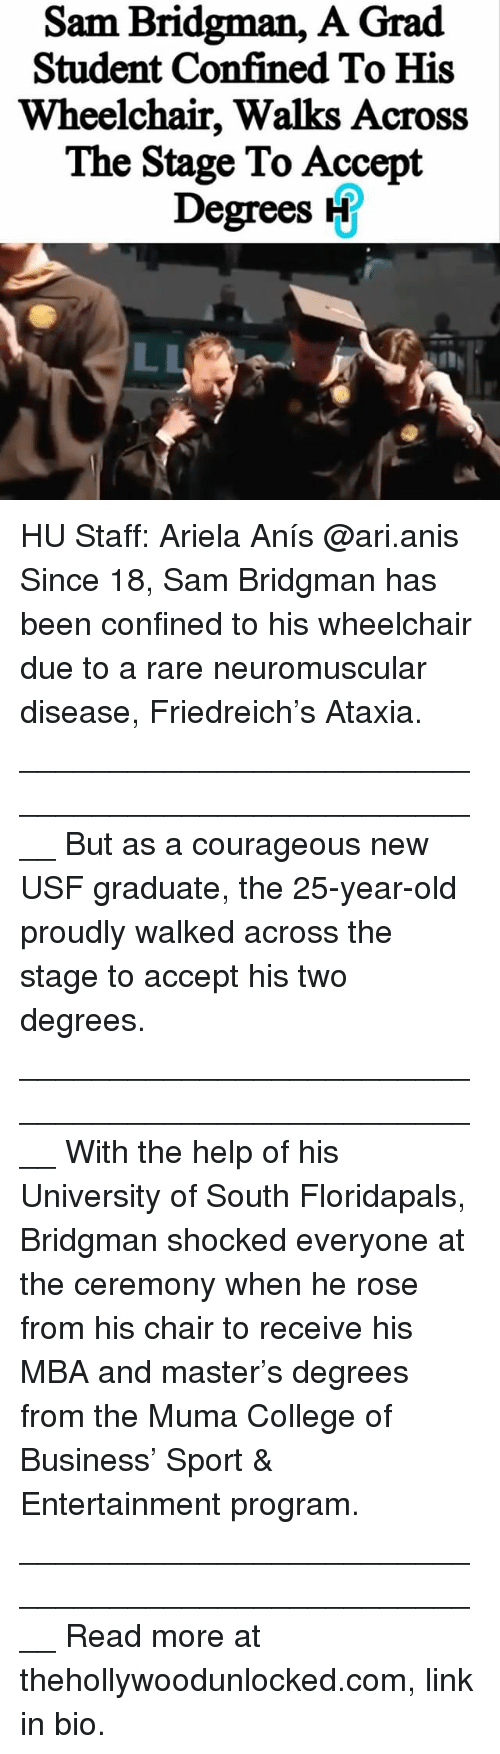 25 Years Old: Sam Bridgman,  A Grad  Student Confined To His  Wheelchair, Walks Across  The Stage To Accept  Degrees H HU Staff: Ariela Anís @ari.anis Since 18, Sam Bridgman has been confined to his wheelchair due to a rare neuromuscular disease, Friedreich's Ataxia. ____________________________________________________ But as a courageous new USF graduate, the 25-year-old proudly walked across the stage to accept his two degrees. ____________________________________________________ With the help of his University of South Floridapals, Bridgman shocked everyone at the ceremony when he rose from his chair to receive his MBA and master's degrees from the Muma College of Business' Sport & Entertainment program. ____________________________________________________ Read more at thehollywoodunlocked.com, link in bio.